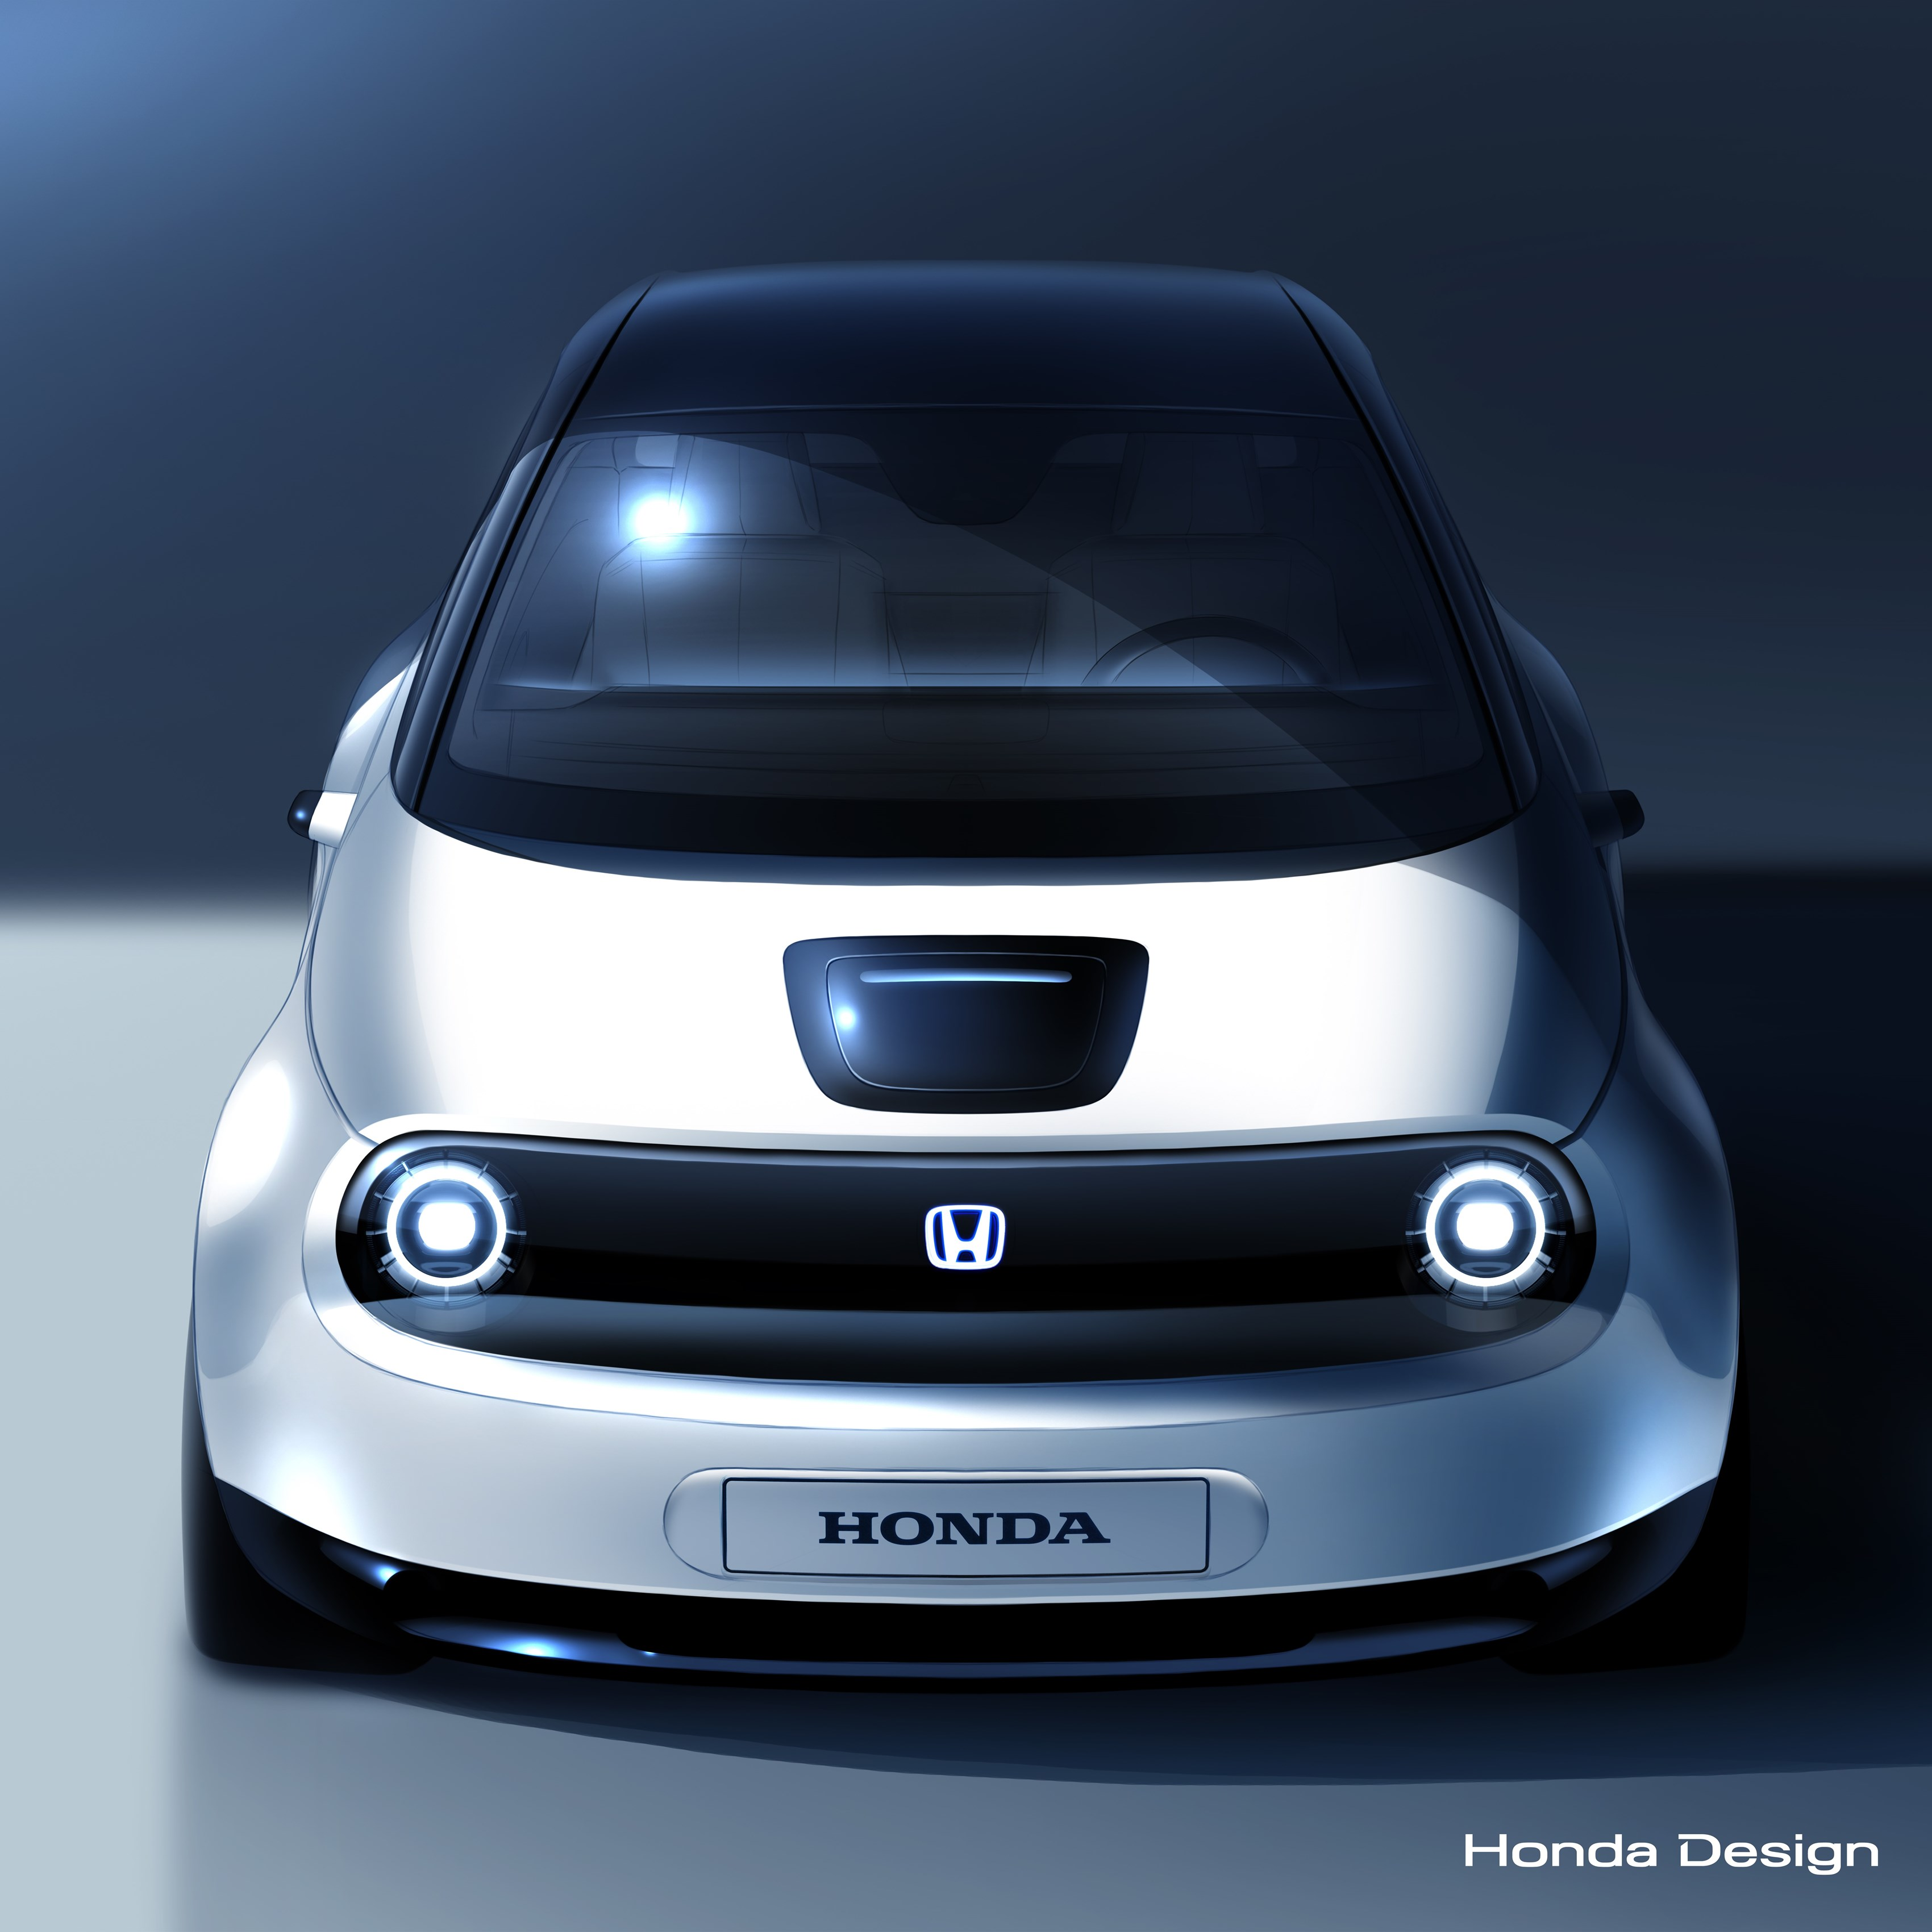 Honda confirms world premiere of new electric vehicle prototype at 2019 Geneva Motor Show